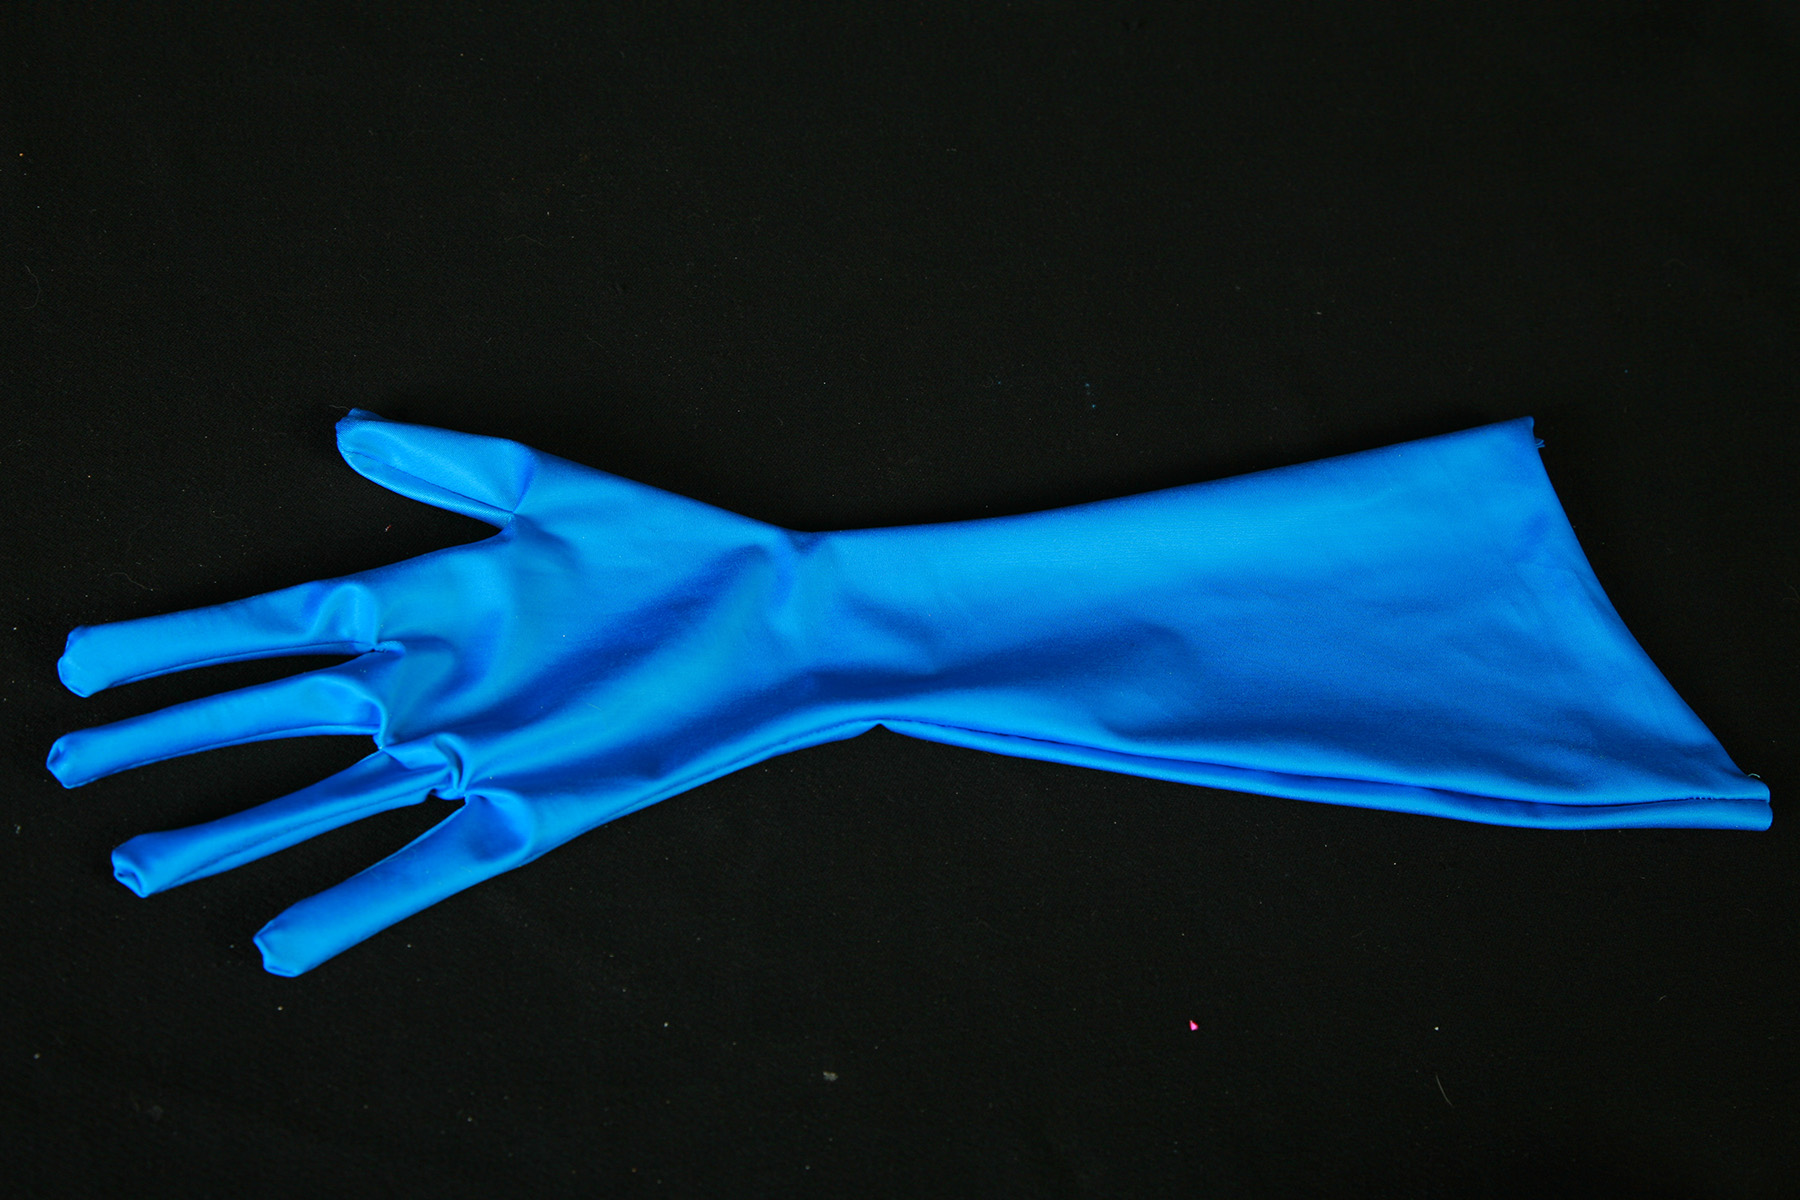 A blue spandex glove against a black background.